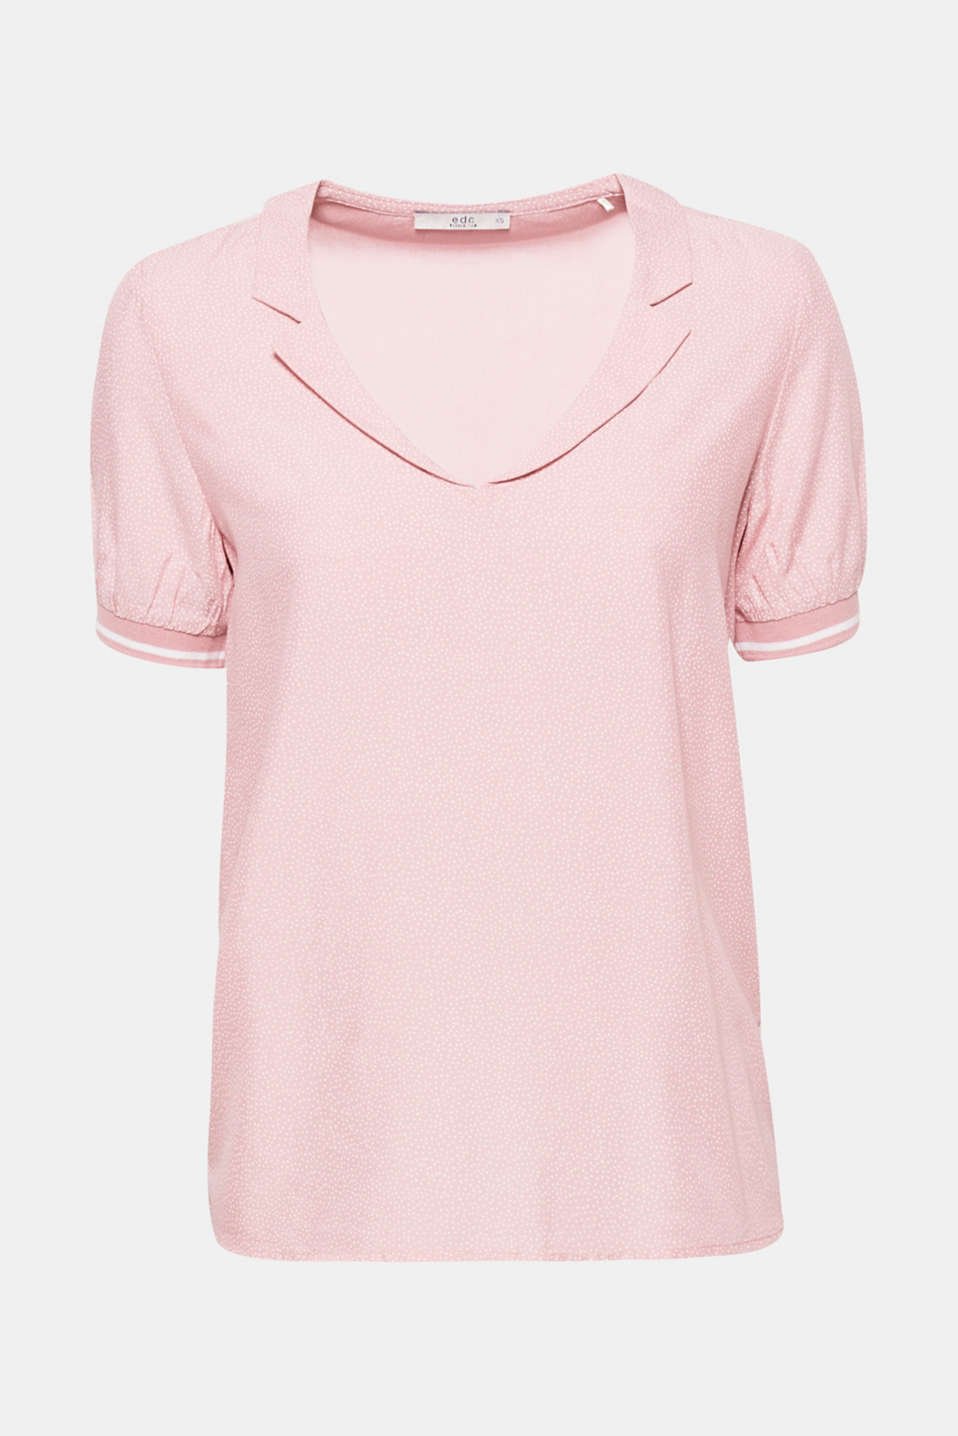 This loose and airy blouse top is the perfect blend of sporty and feminine and features a print and striped edges.